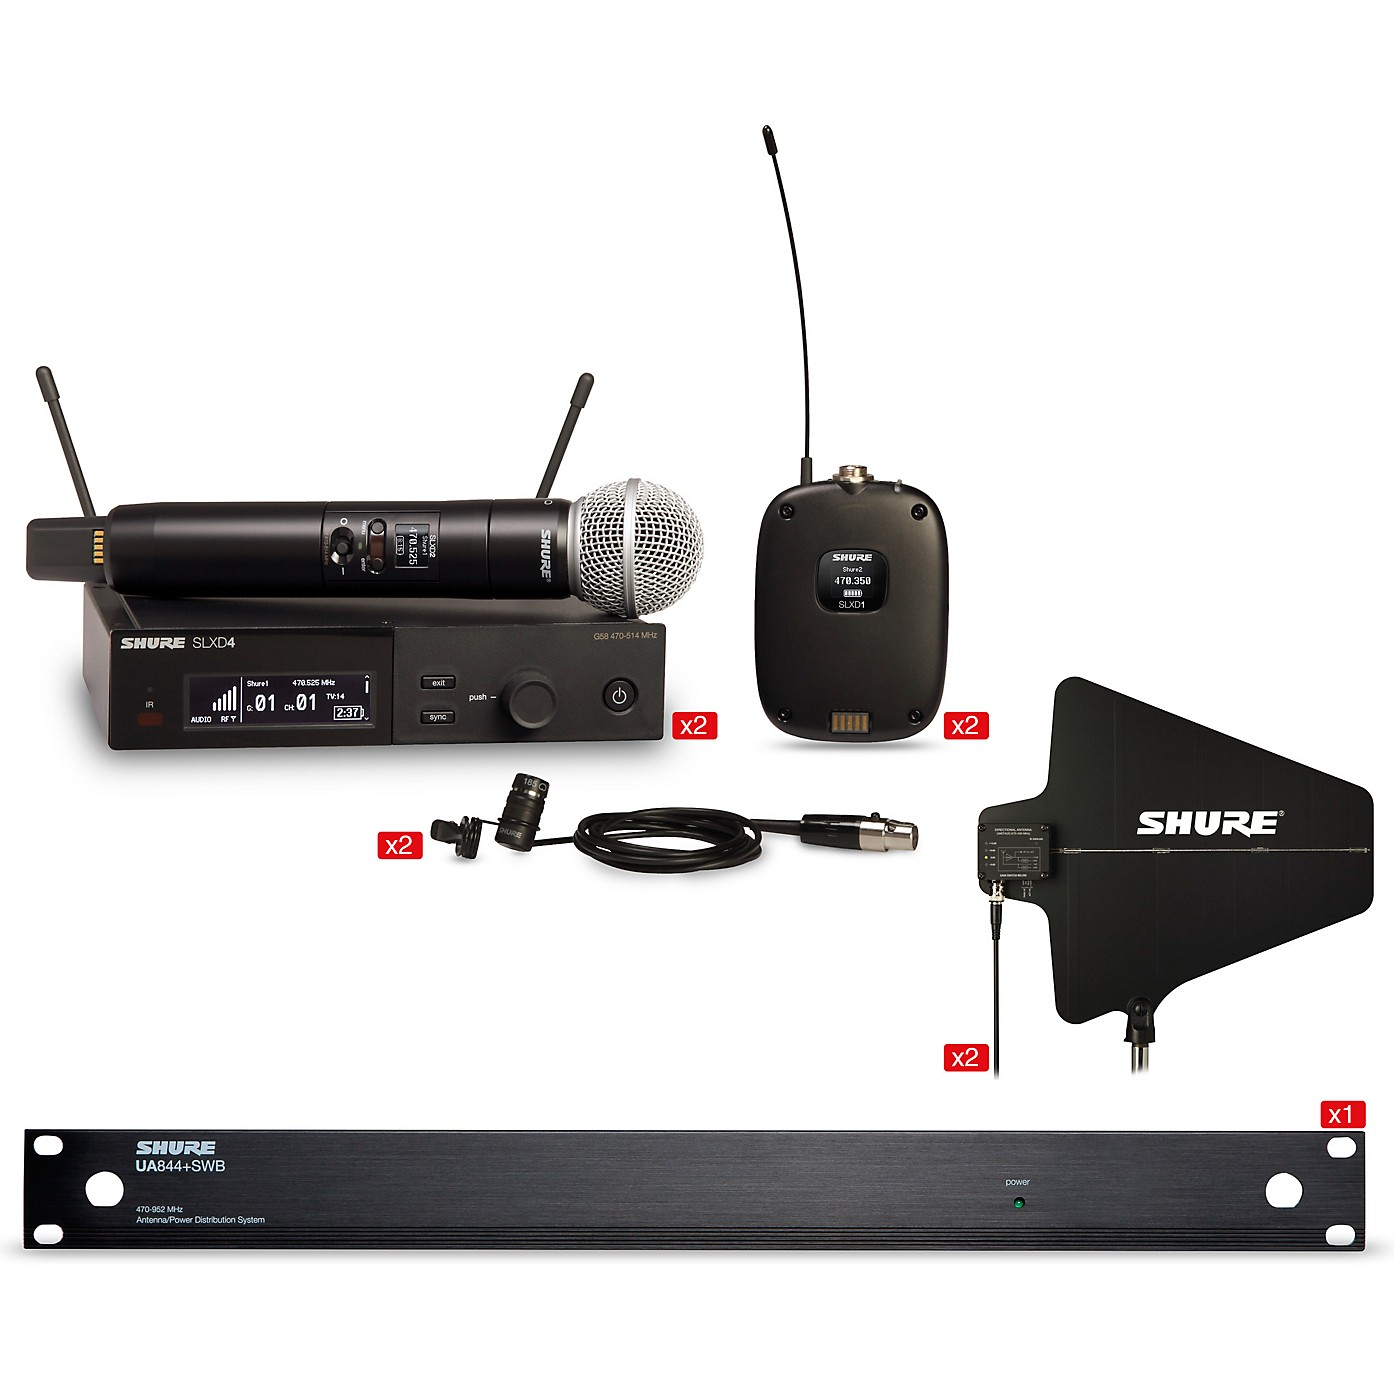 Shure SLXD Quad Combo Bundle With 2 Handheld and 2 Combo Systems With Antenna thumbnail